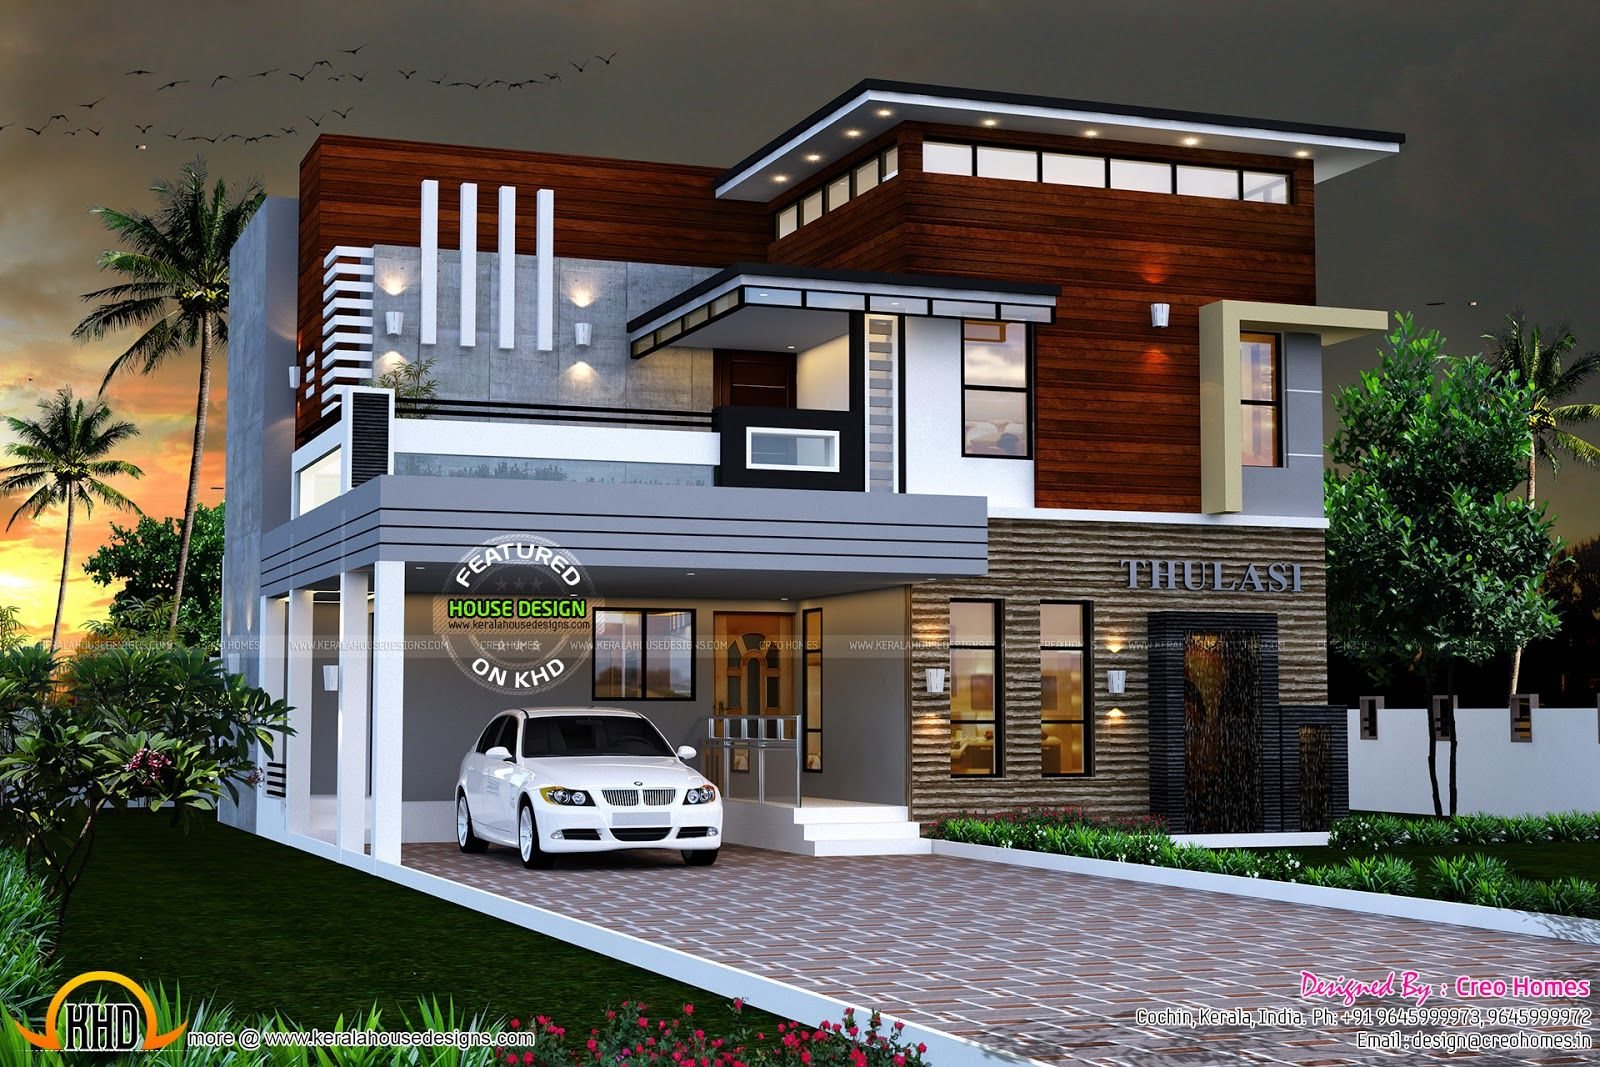 Eterior design modern small house architecture building plan home design kerala house plans home - Modern house decorations ...